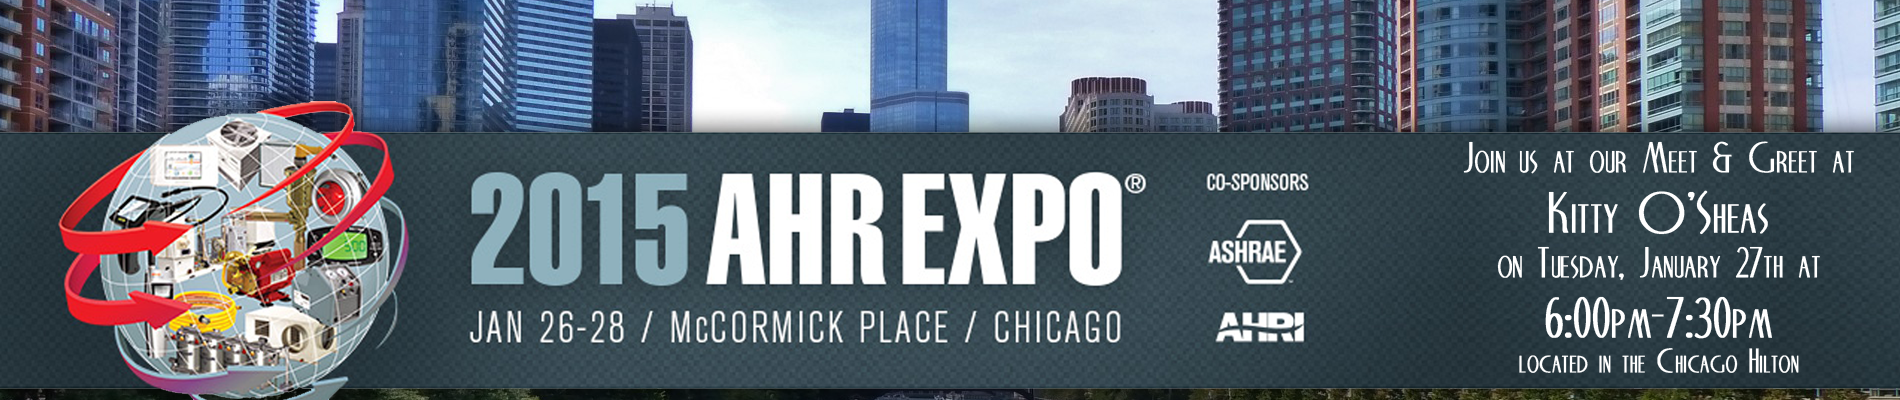 Join Women in HVAC at the AHR Expo in Chicago in January 2015.